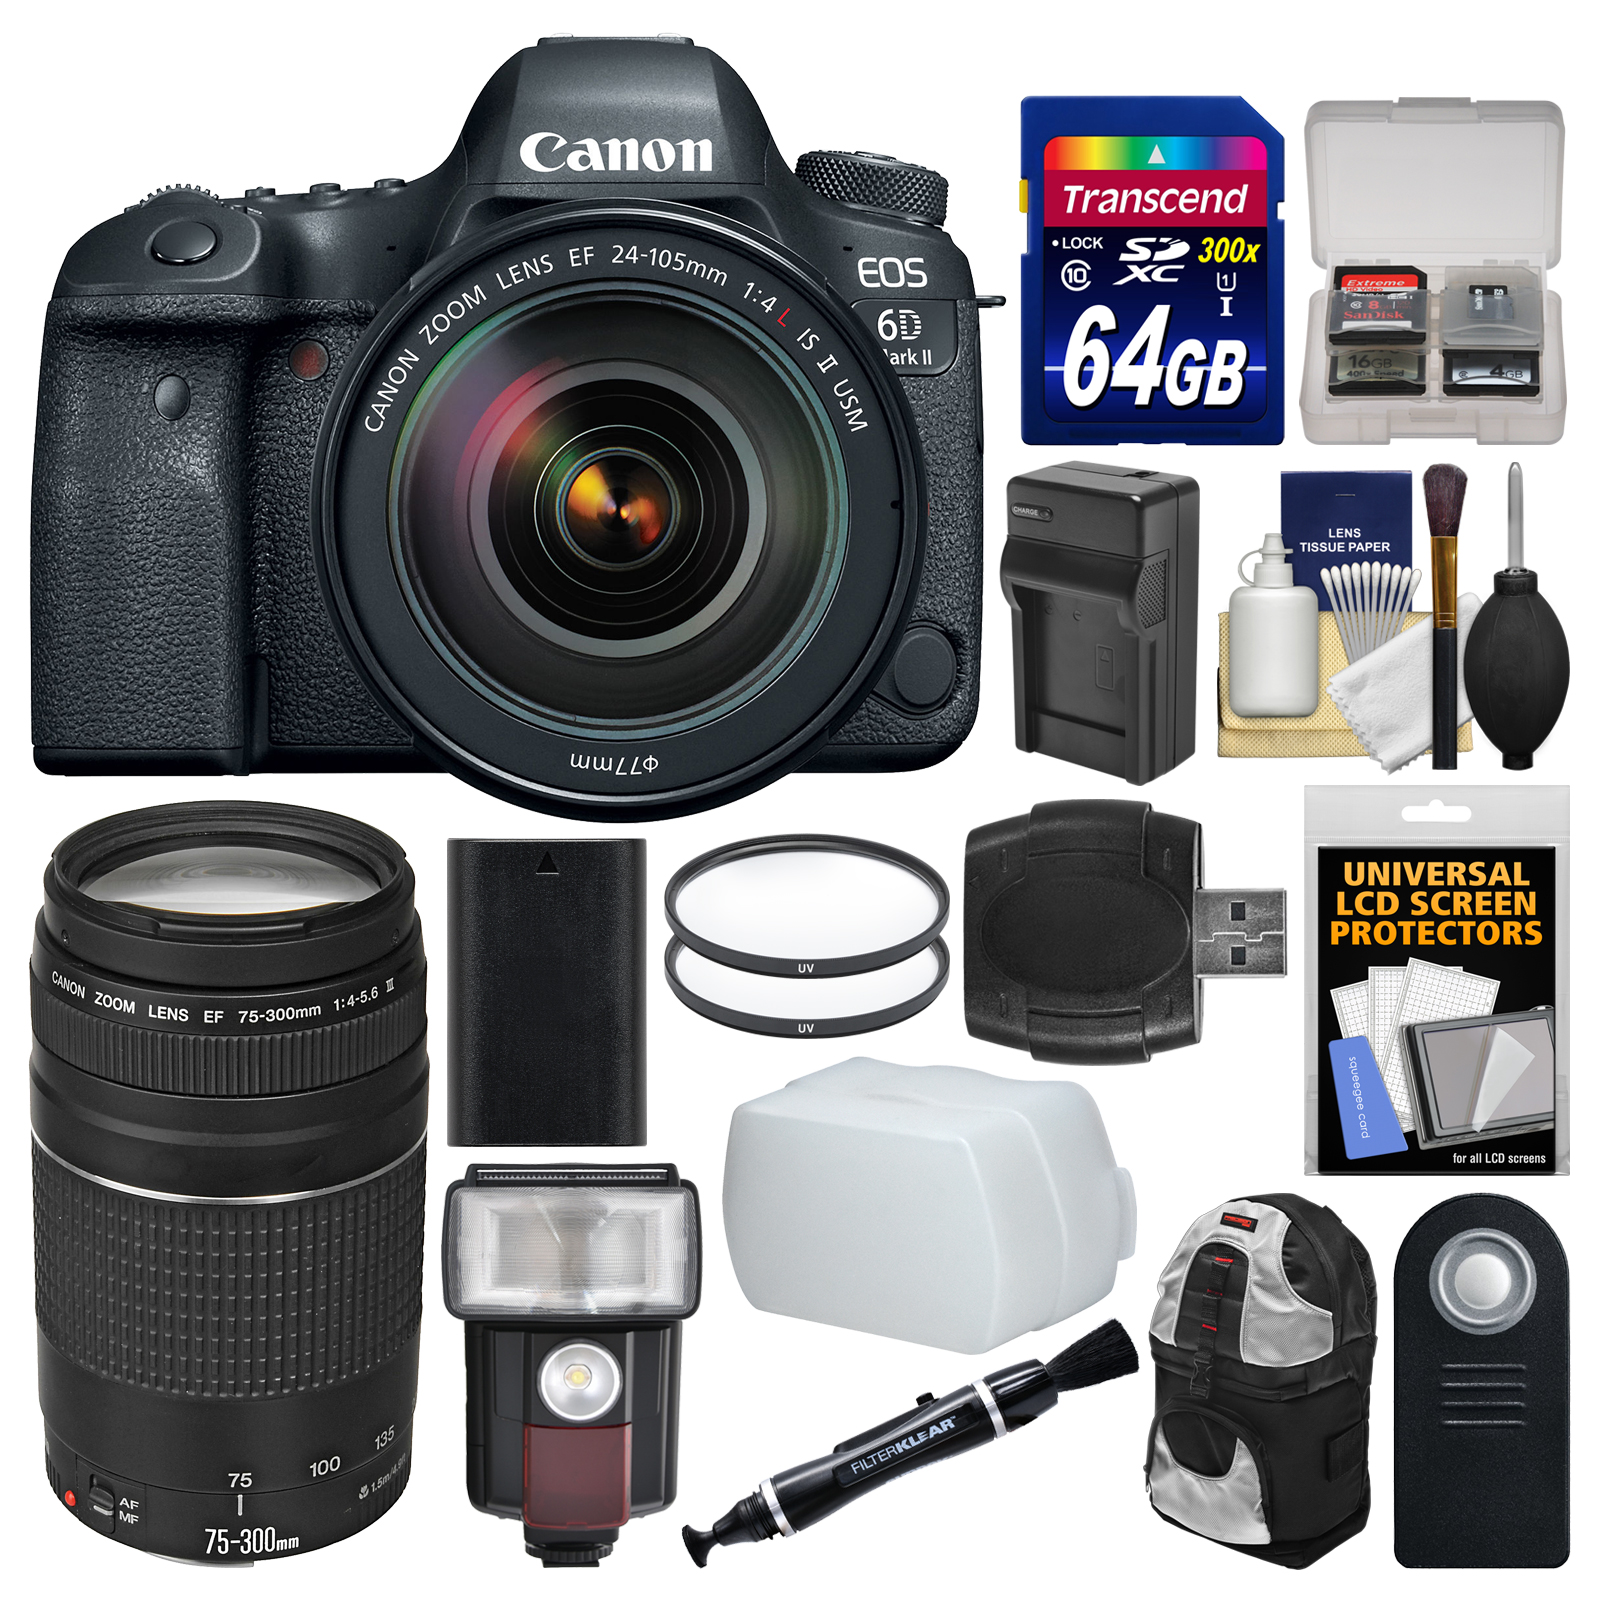 Canon EOS 6D Mark II Wi-Fi Digital SLR Camera & EF 24-105mm f/4L IS II USM + 75-300mm III Lens + 64GB Card + Backpack + Flash + Battery/Charger + Filters Kit